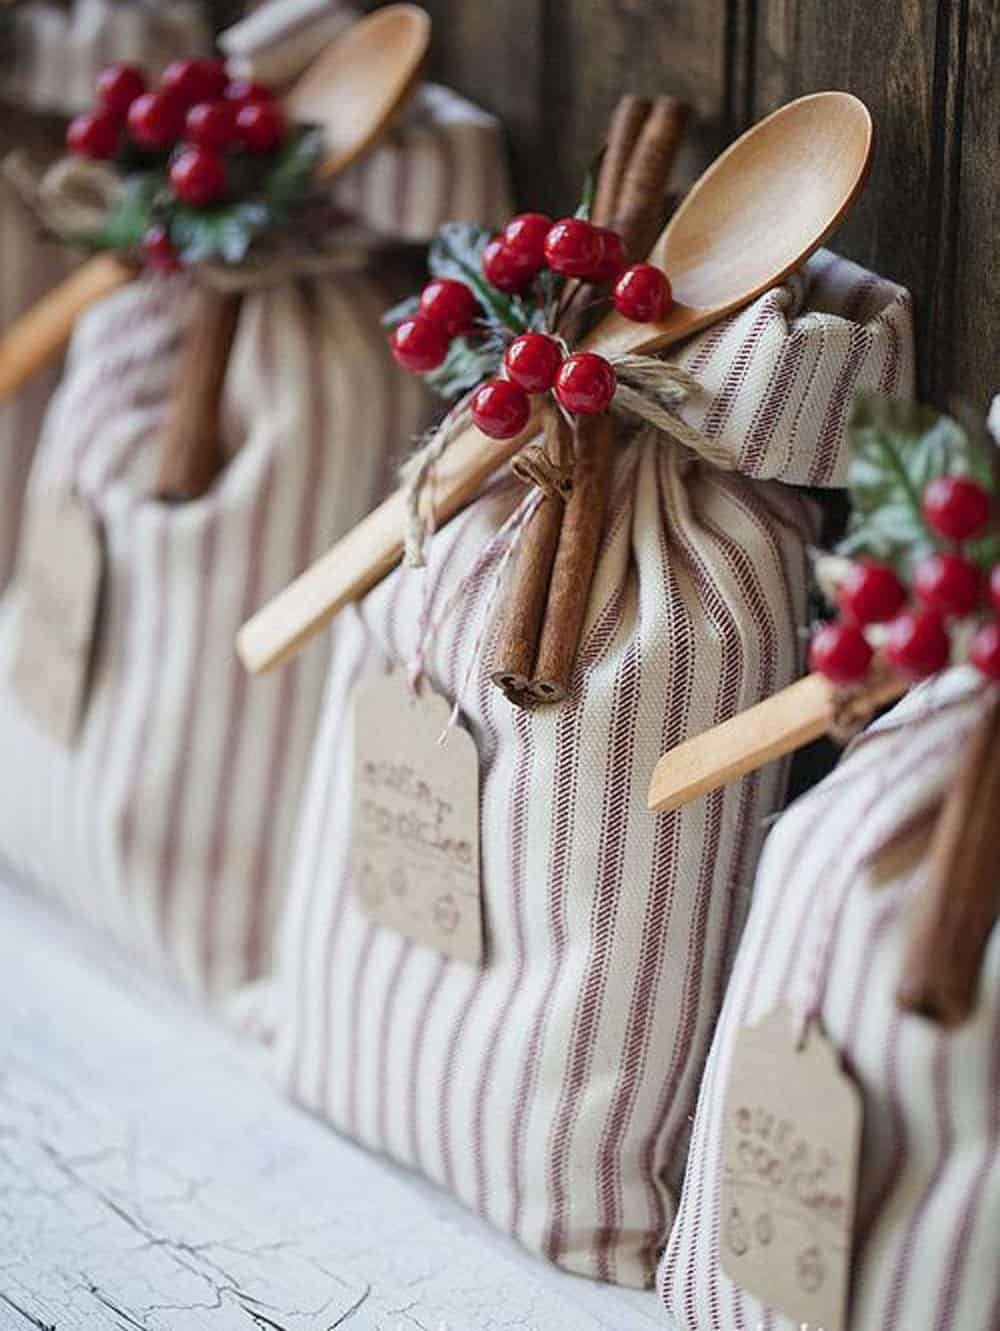 Homemade Christmas Gifts Ideas.17 Amazing Handmade Christmas Gift Ideas Your Friends And